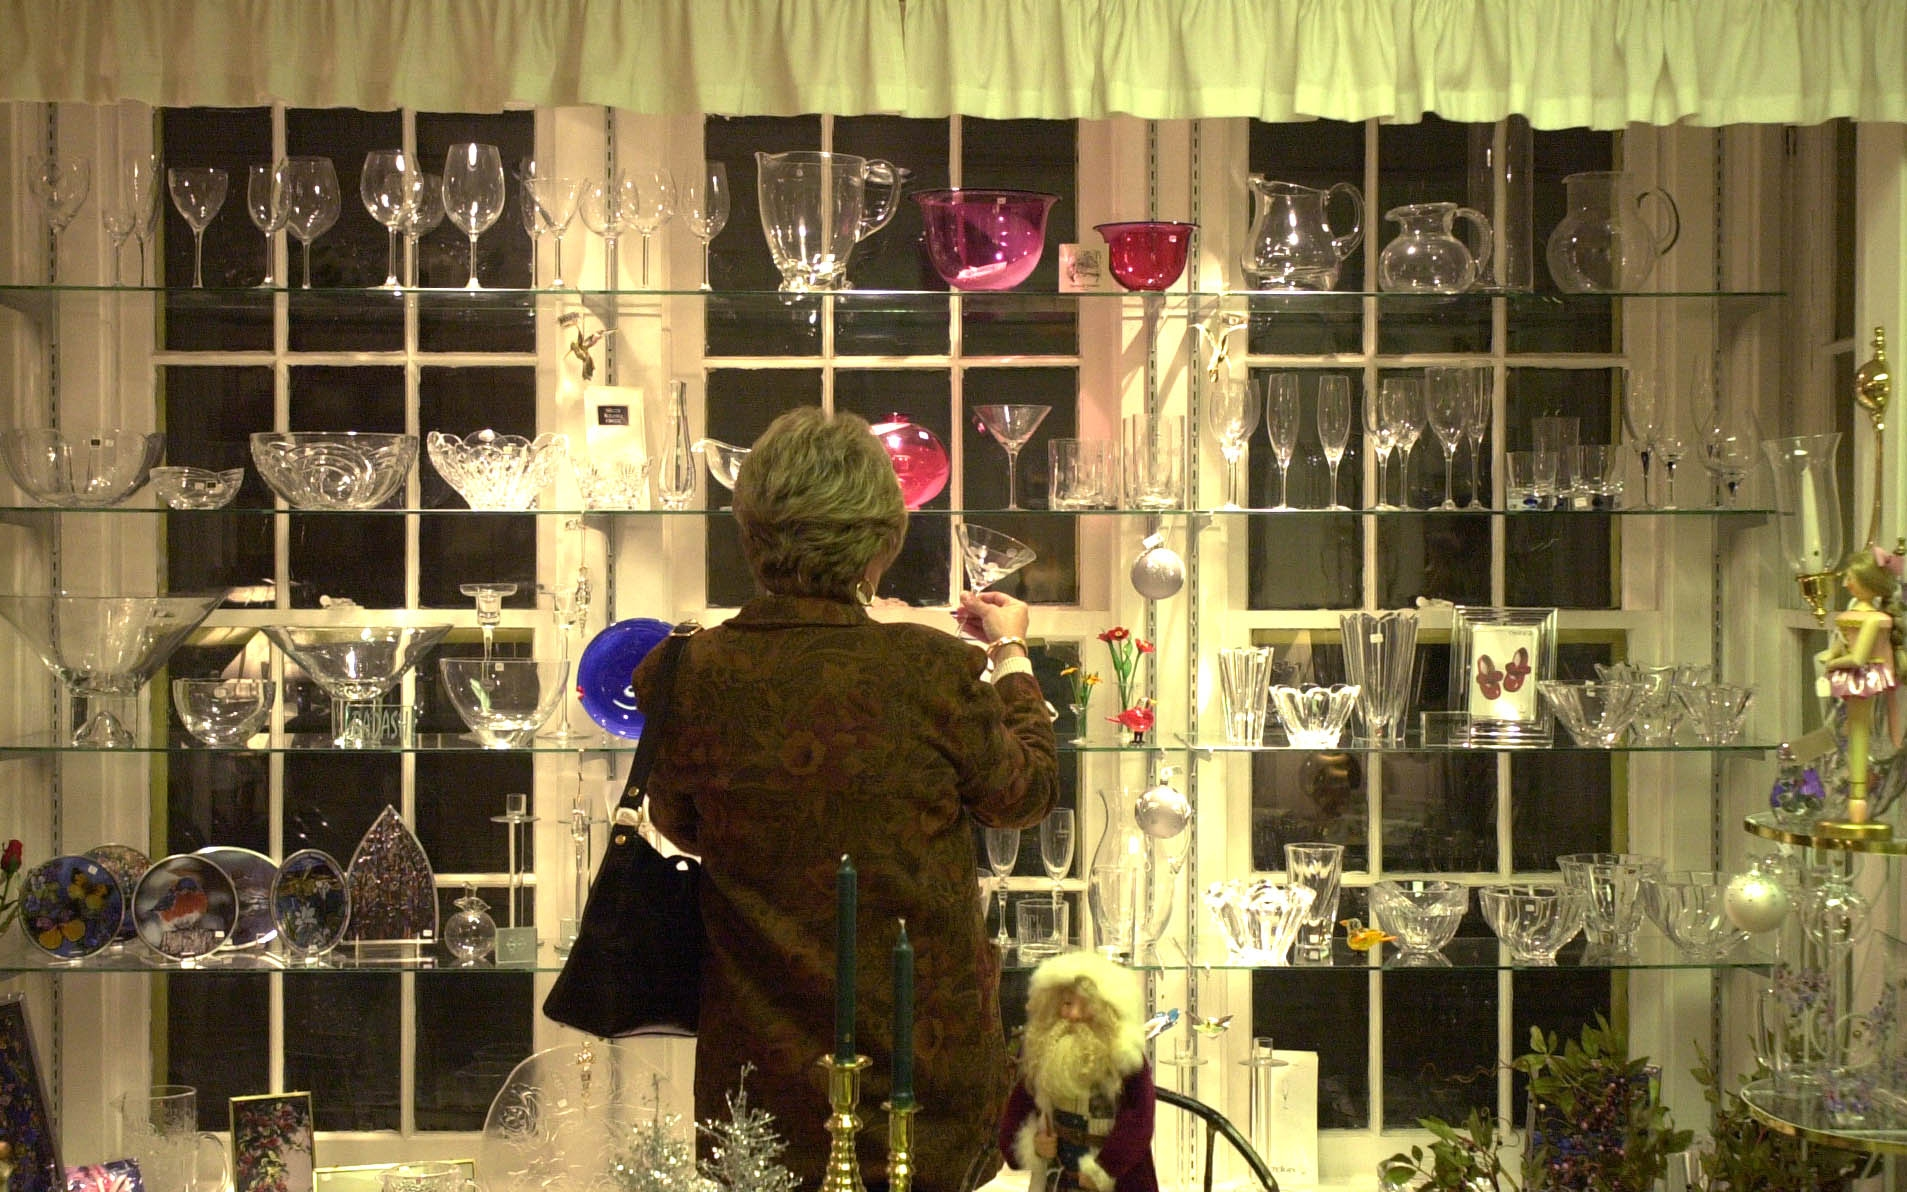 A shopper checks glassware at the Lemon Tree, one of the Orchard Park businesses due to close.